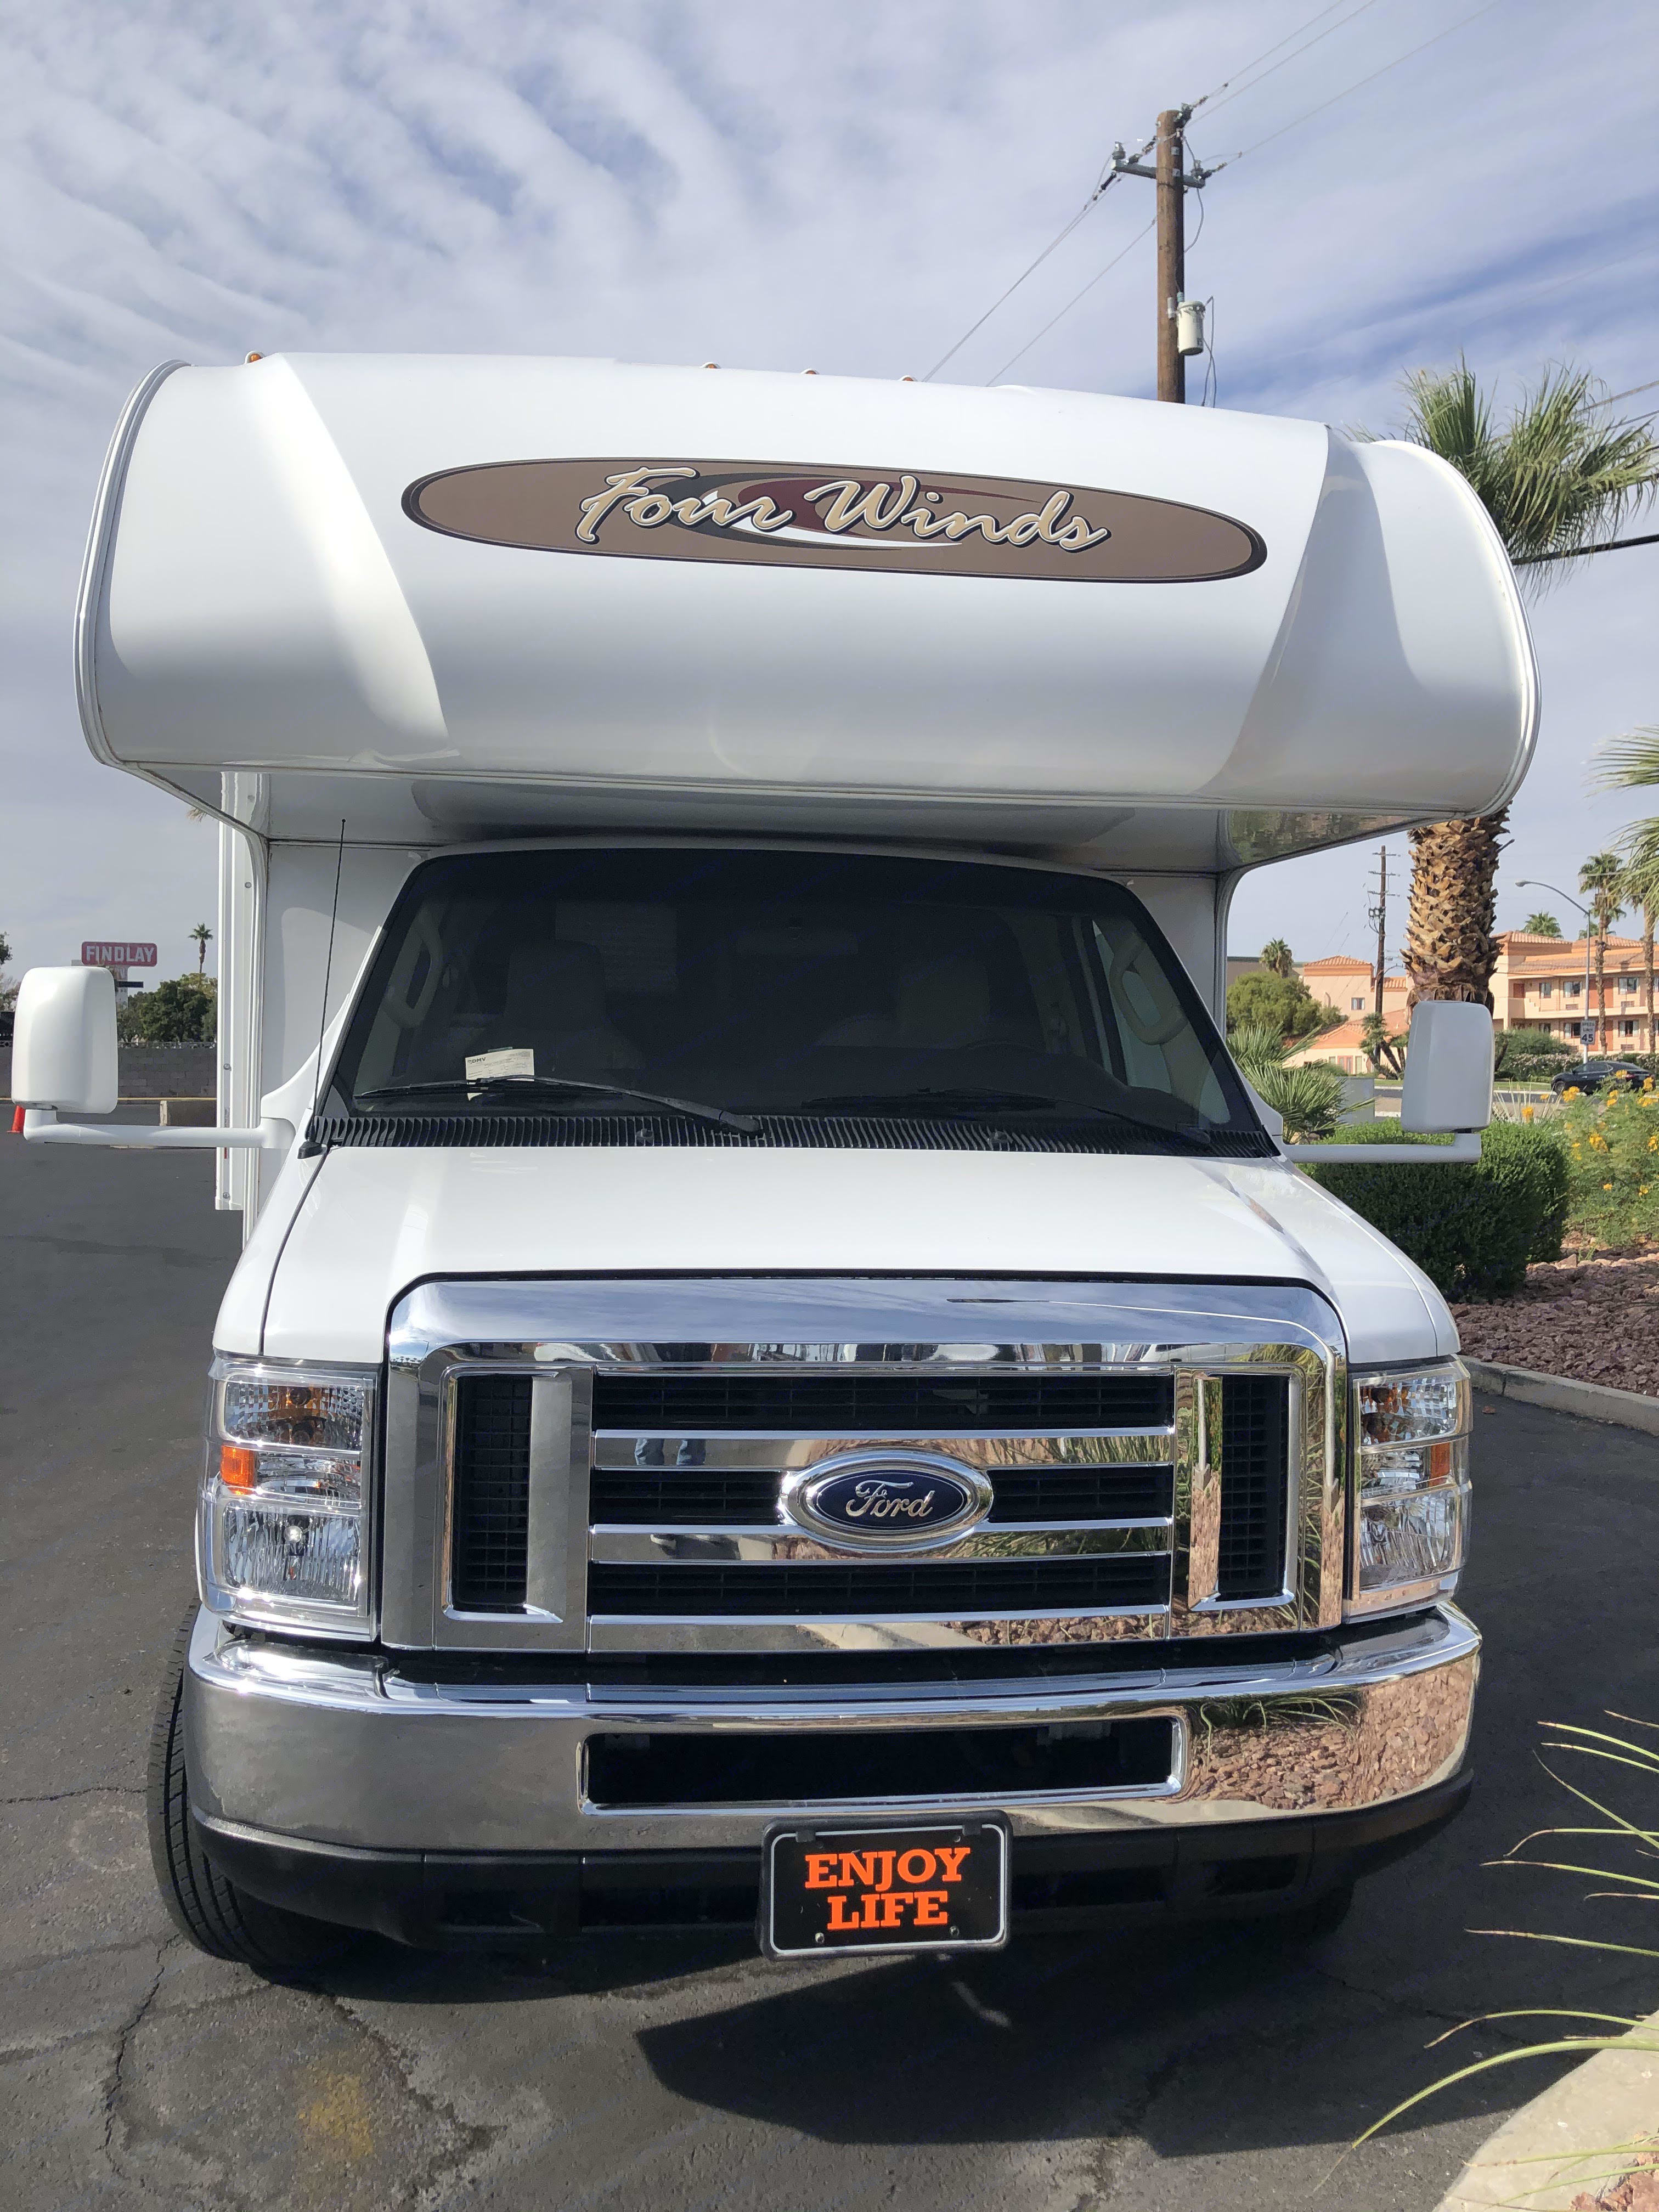 One clean looking 2019 RV ready for the road for exploring and adventure!. Thor Motor Coach Four Winds 2019